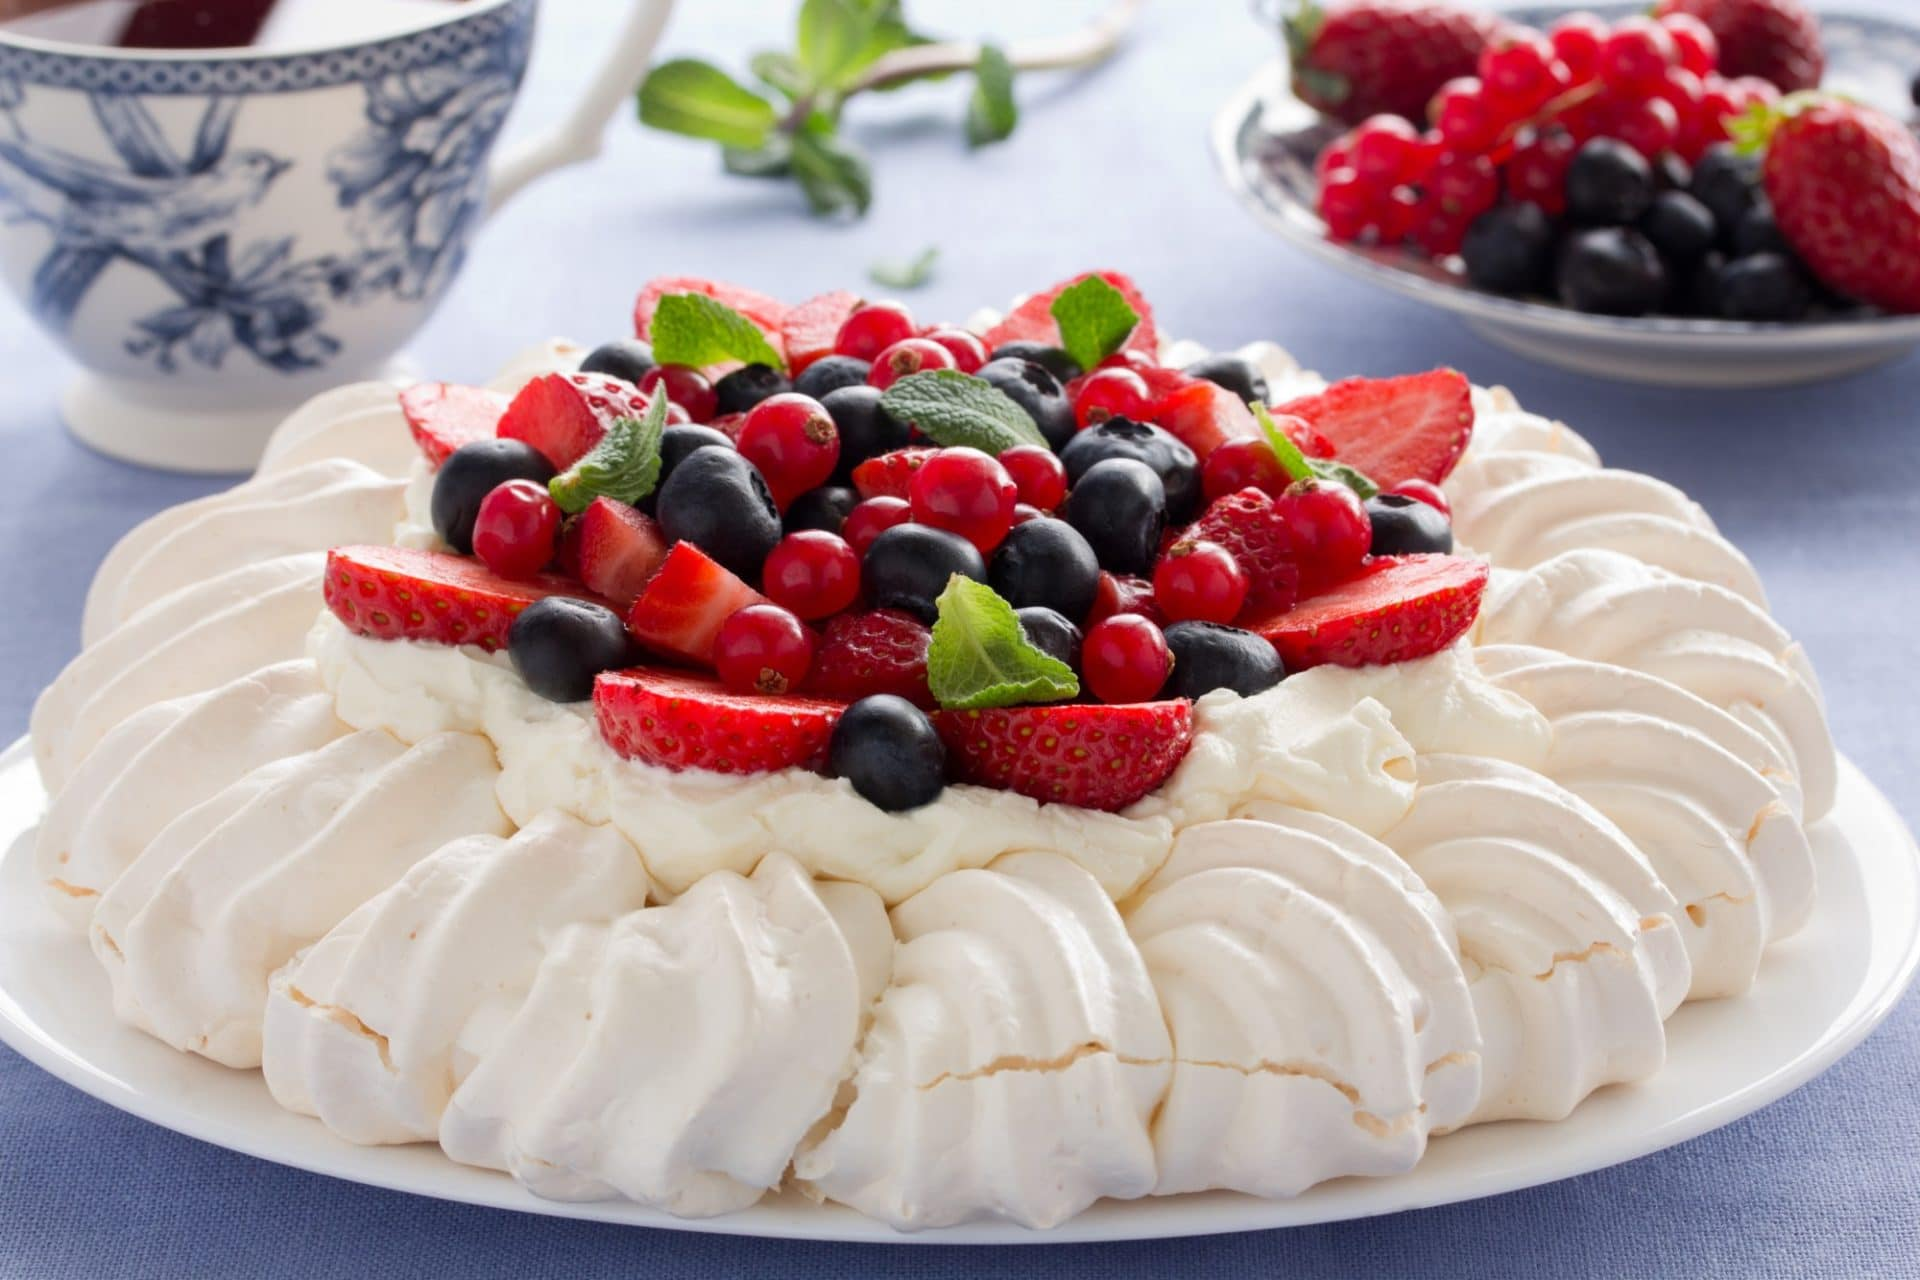 A delicious introduction to iconic australian desserts epicure photo courtesy of via shutterstock forumfinder Images